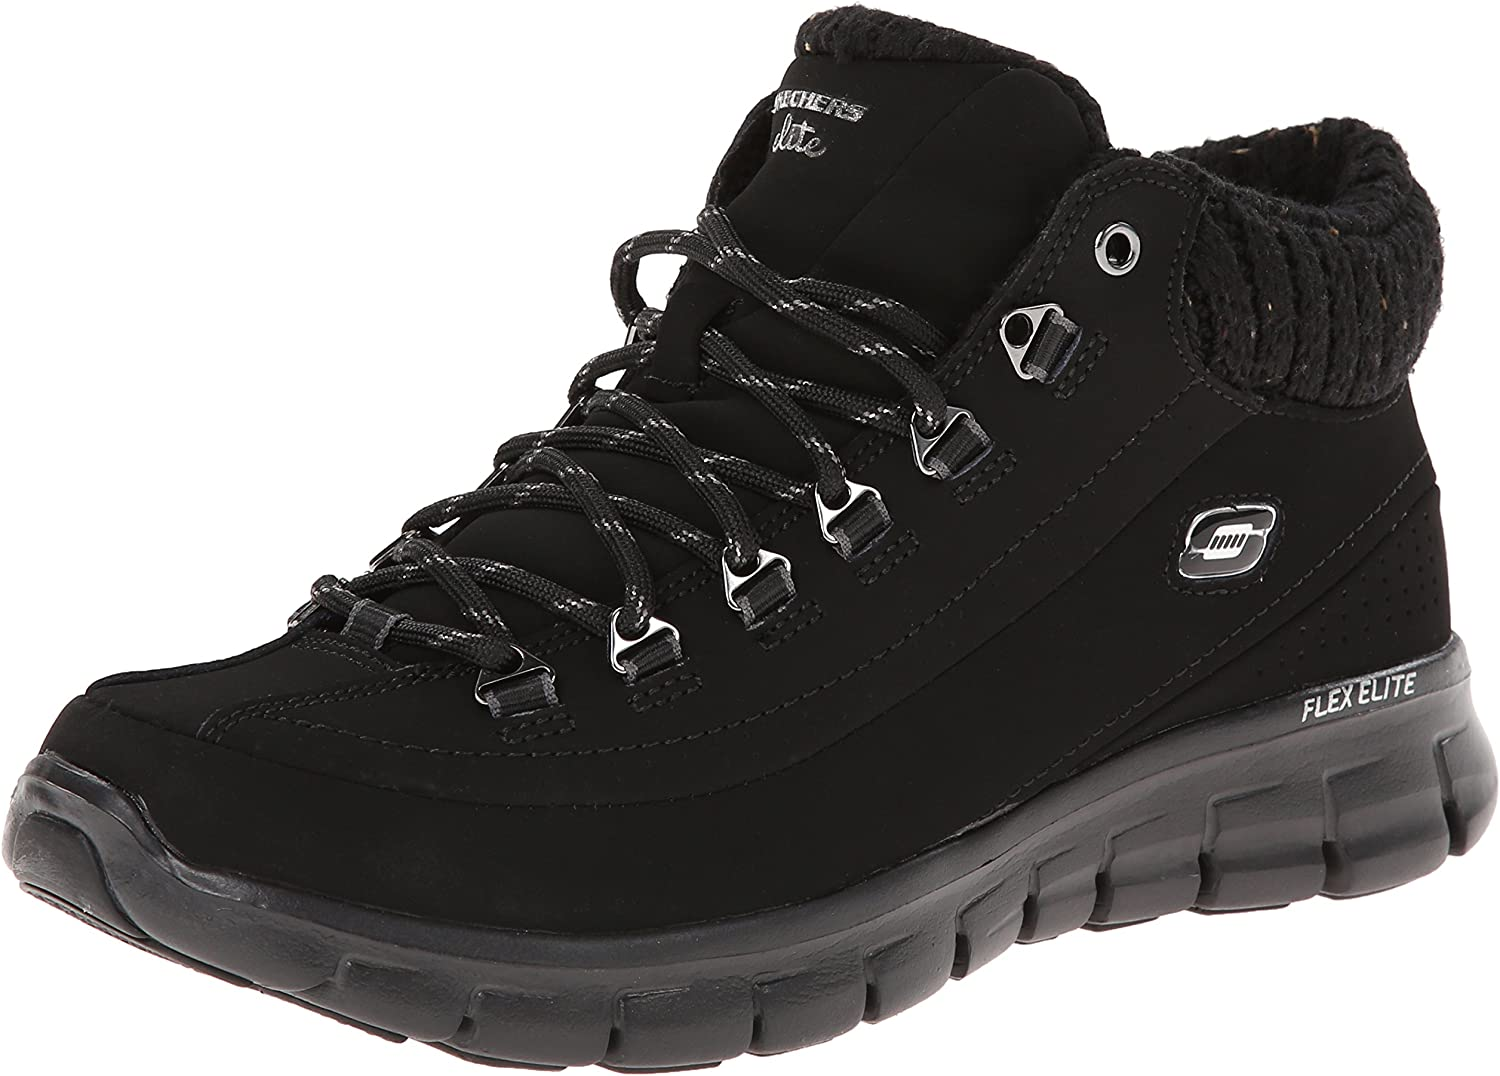 SkechersSynergy Strong Will Stivaletti classici non Z6YiP